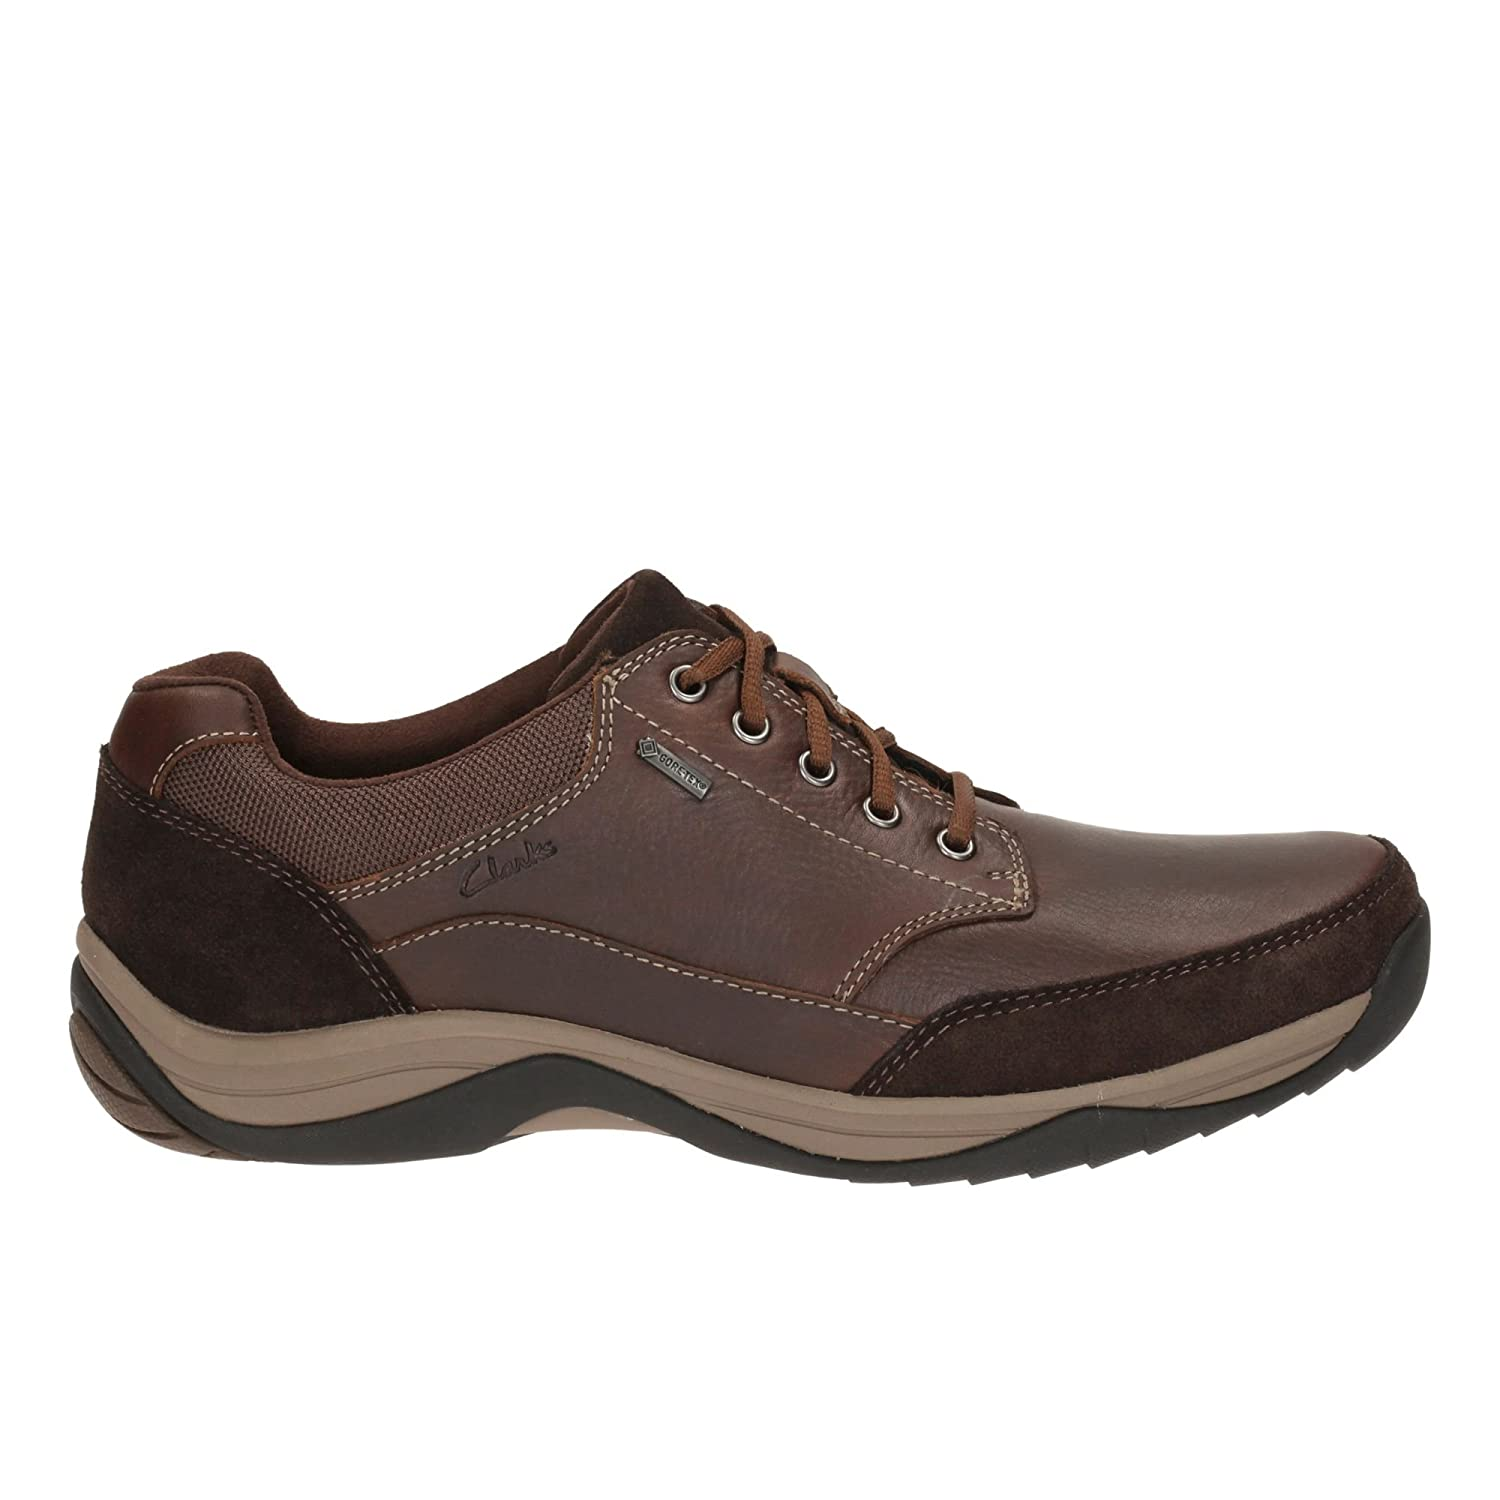 Clarks Men's Lace-up Gore-Tex Shoes BaystoneGo GTX Mahogany Leather